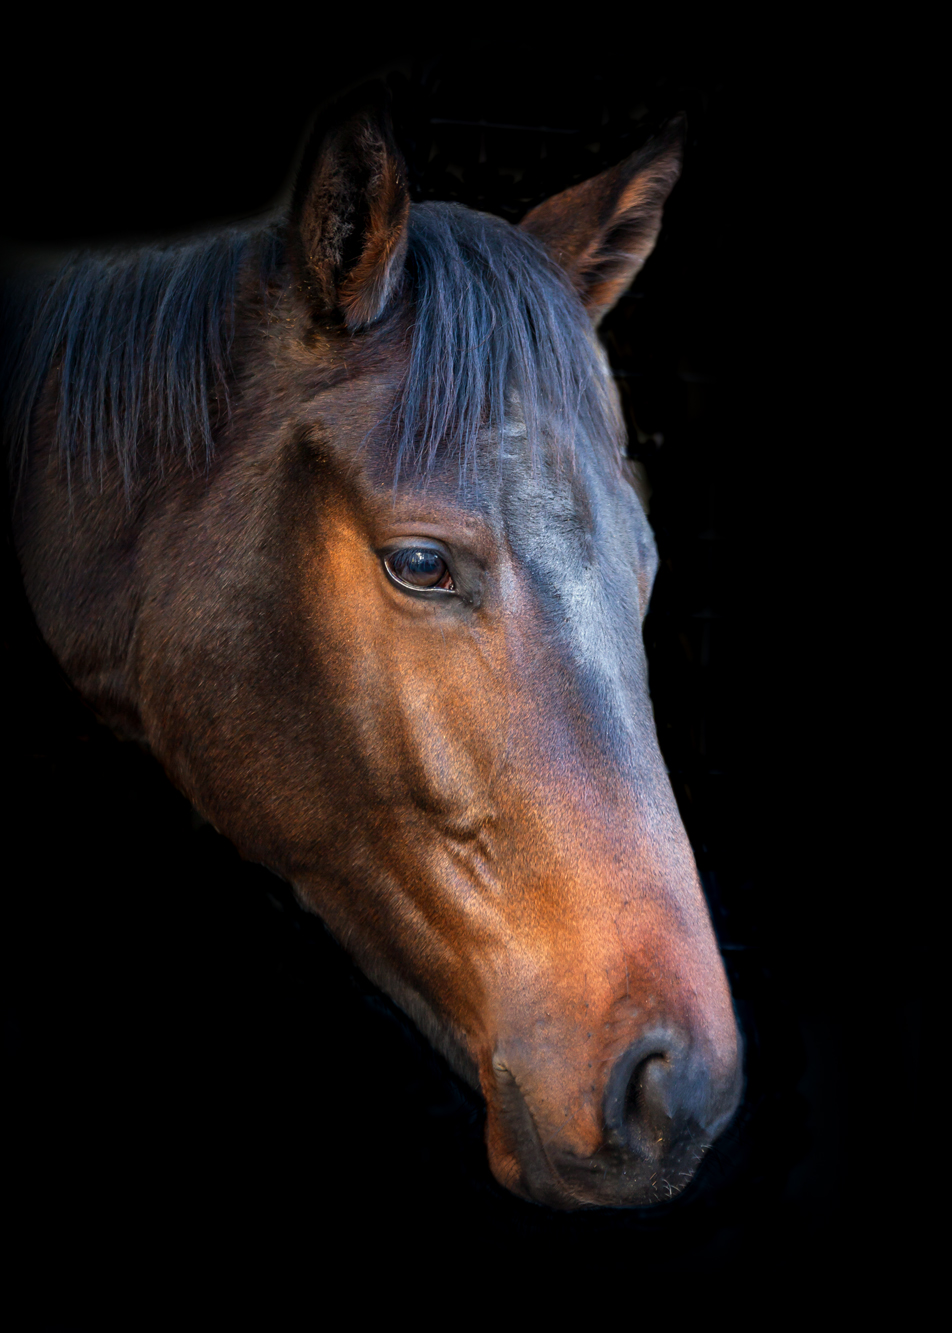 Equine Photography Damienkellyphotography